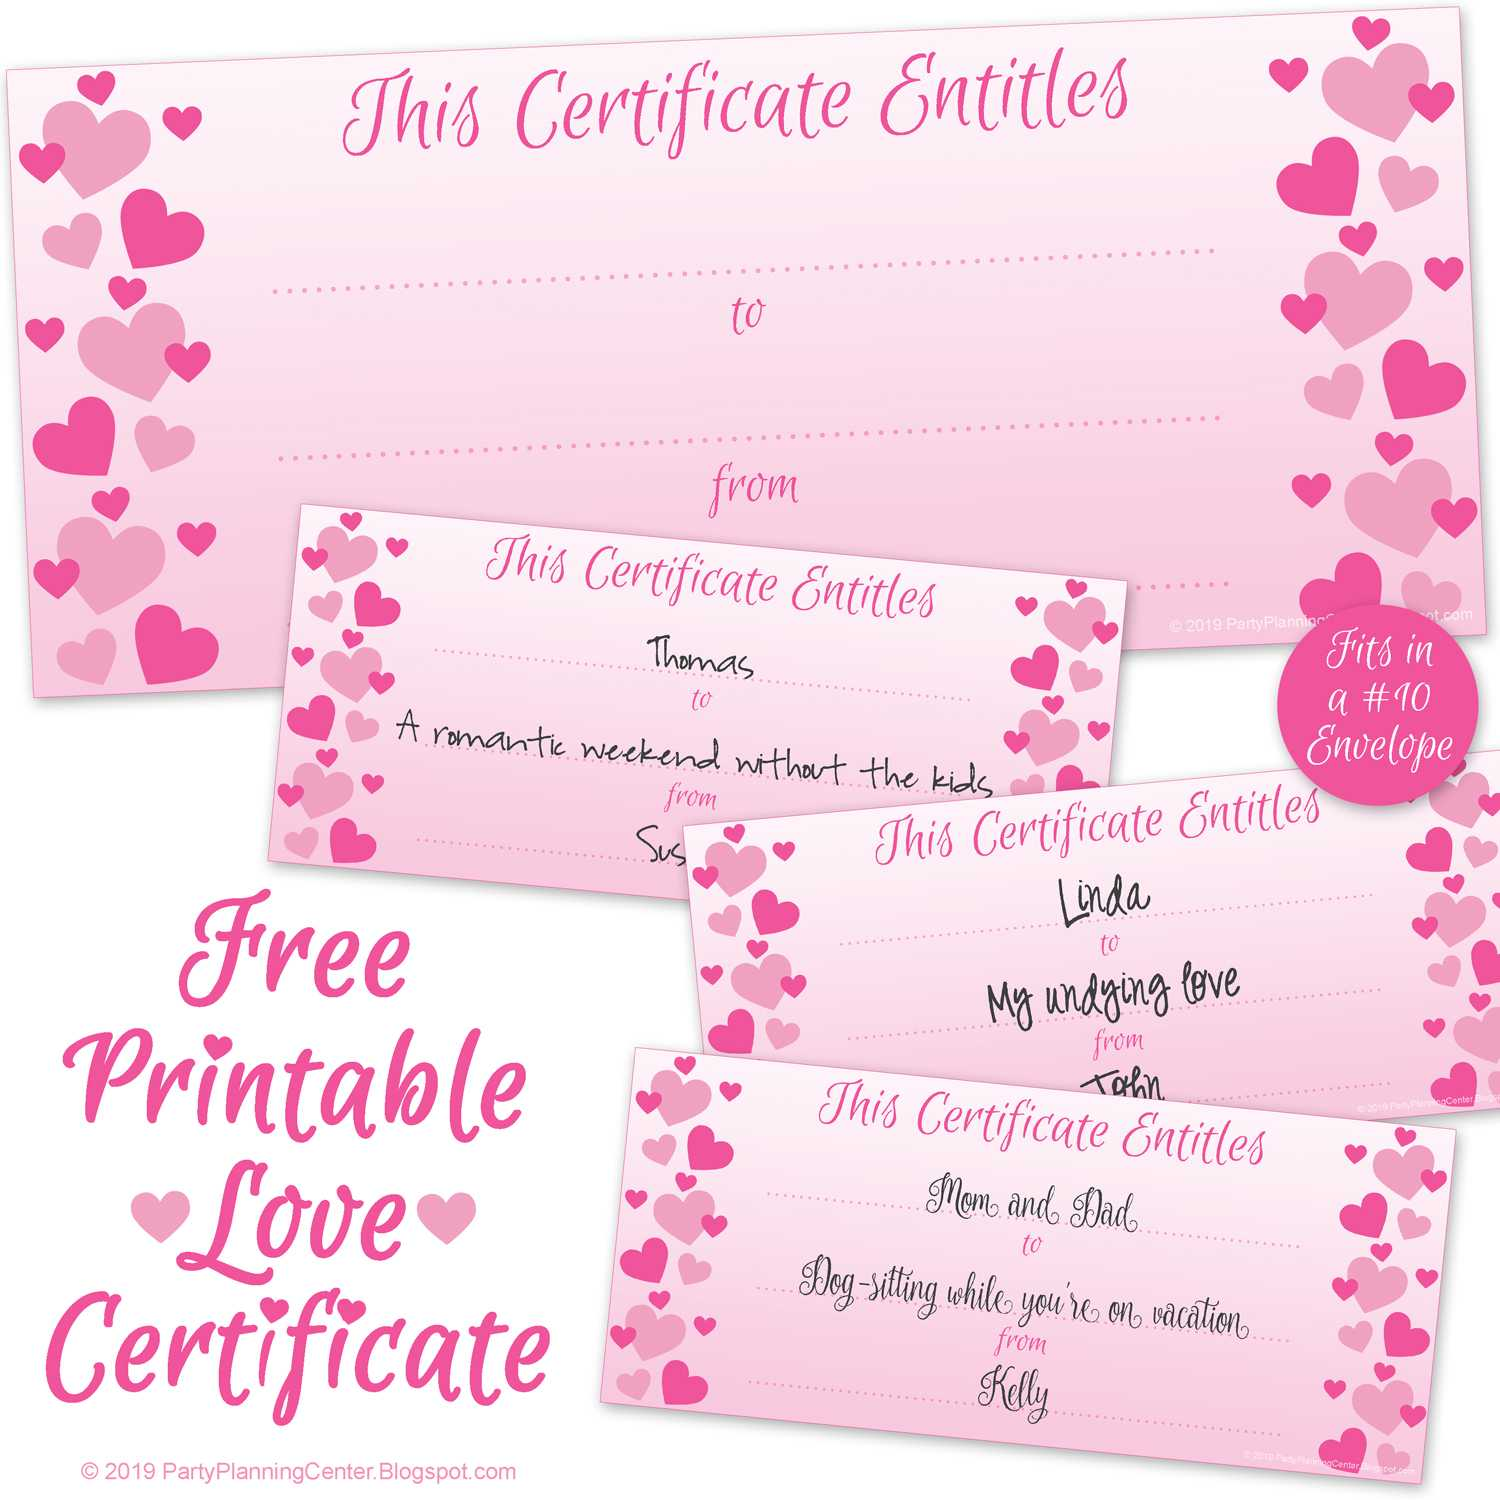 Can't Find Substitution For Tag [Post.body]--> Printable within Love Certificate Templates